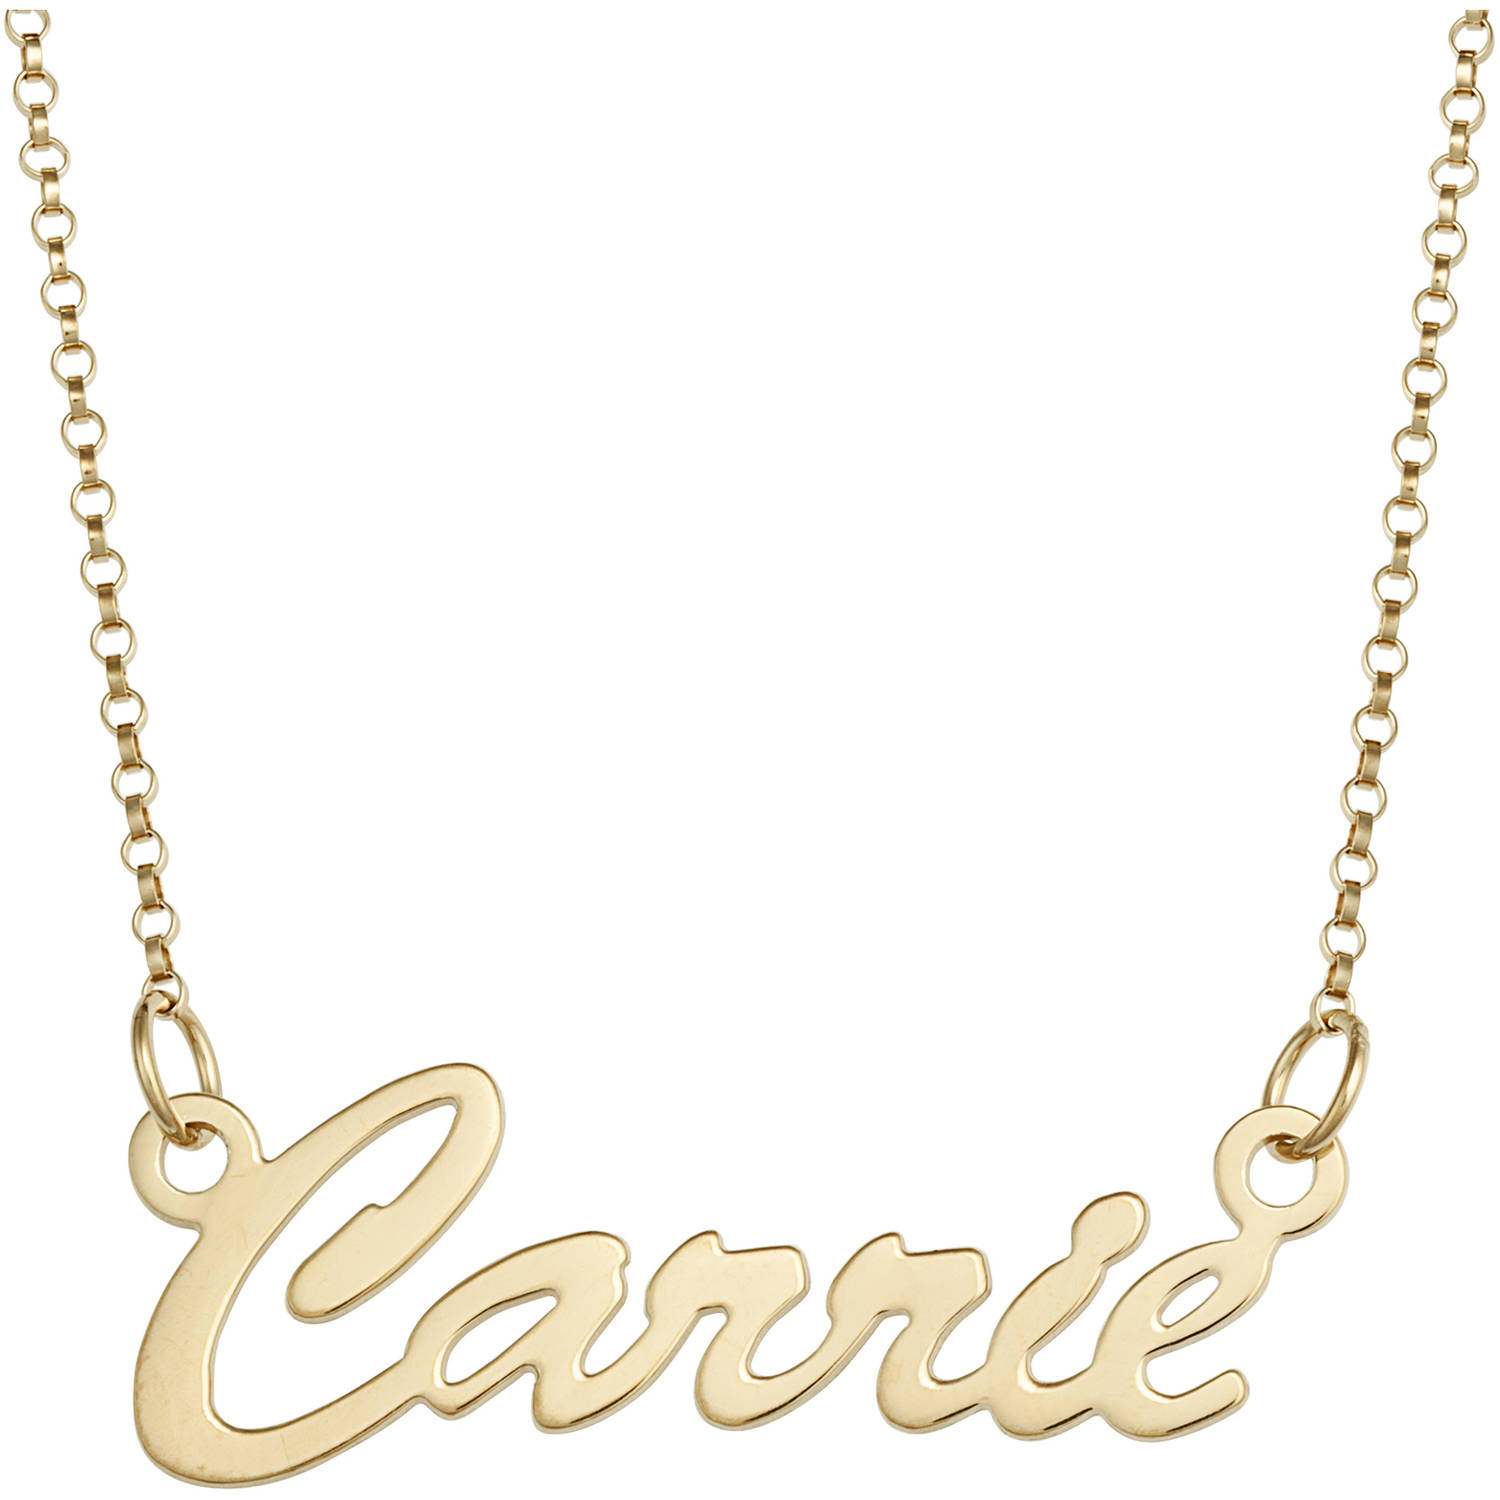 Personalized 18K Gold over Sterling Silver Hollywood Script Name Necklace, 18""